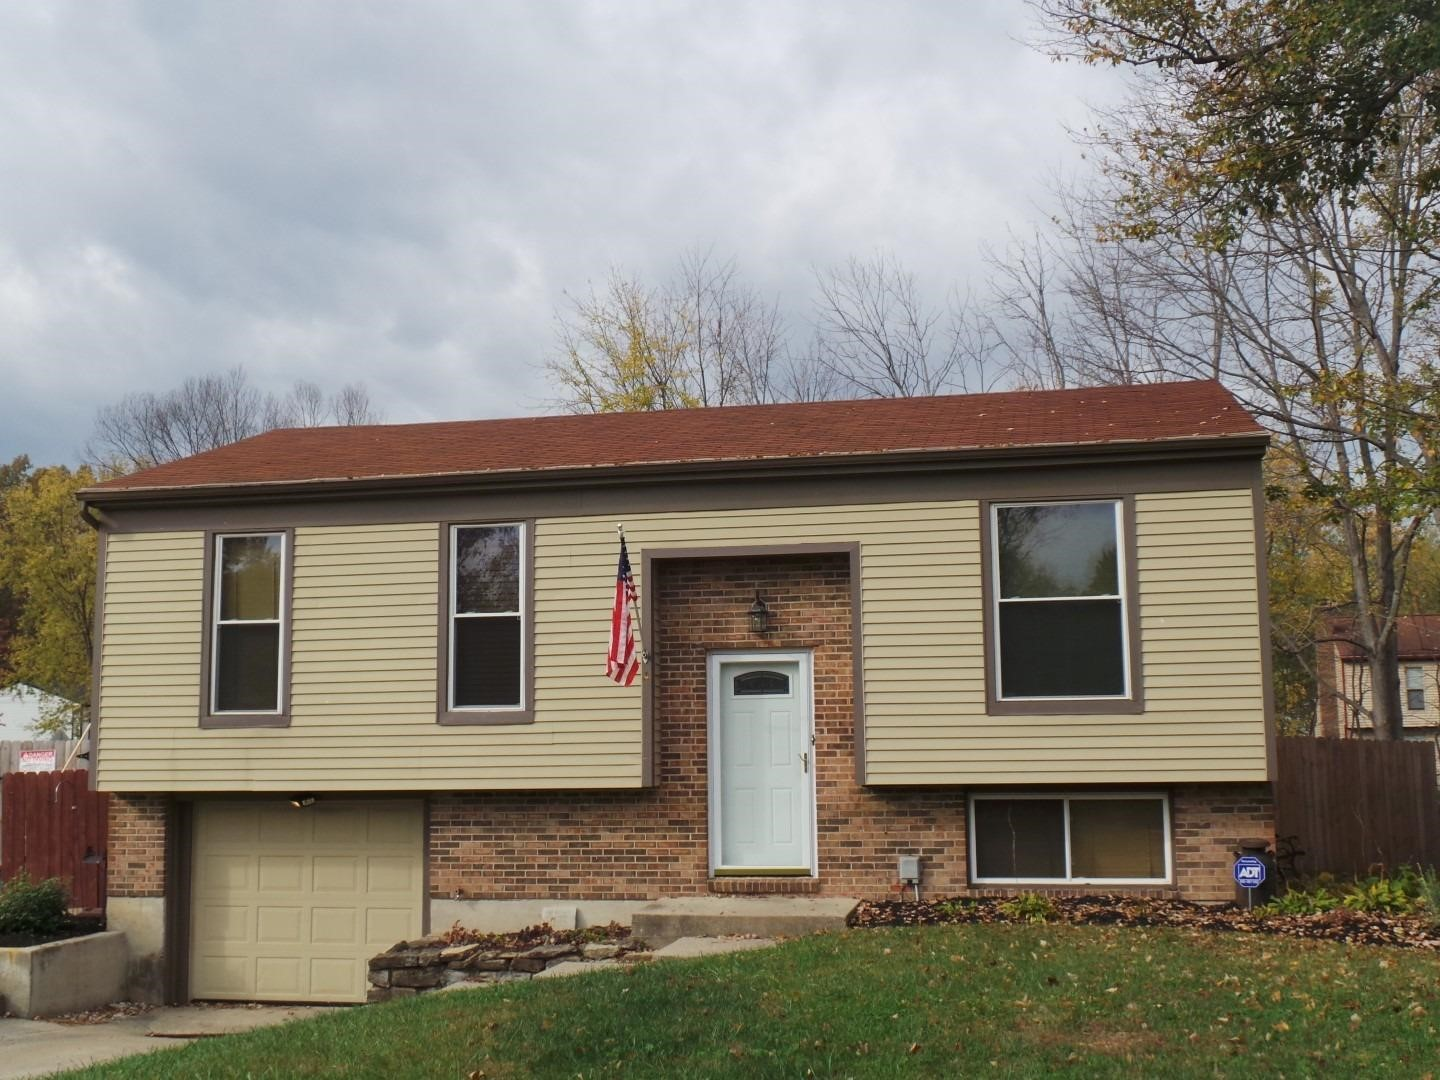 5801 Mount Vernon Dr, Milford, OH 45150